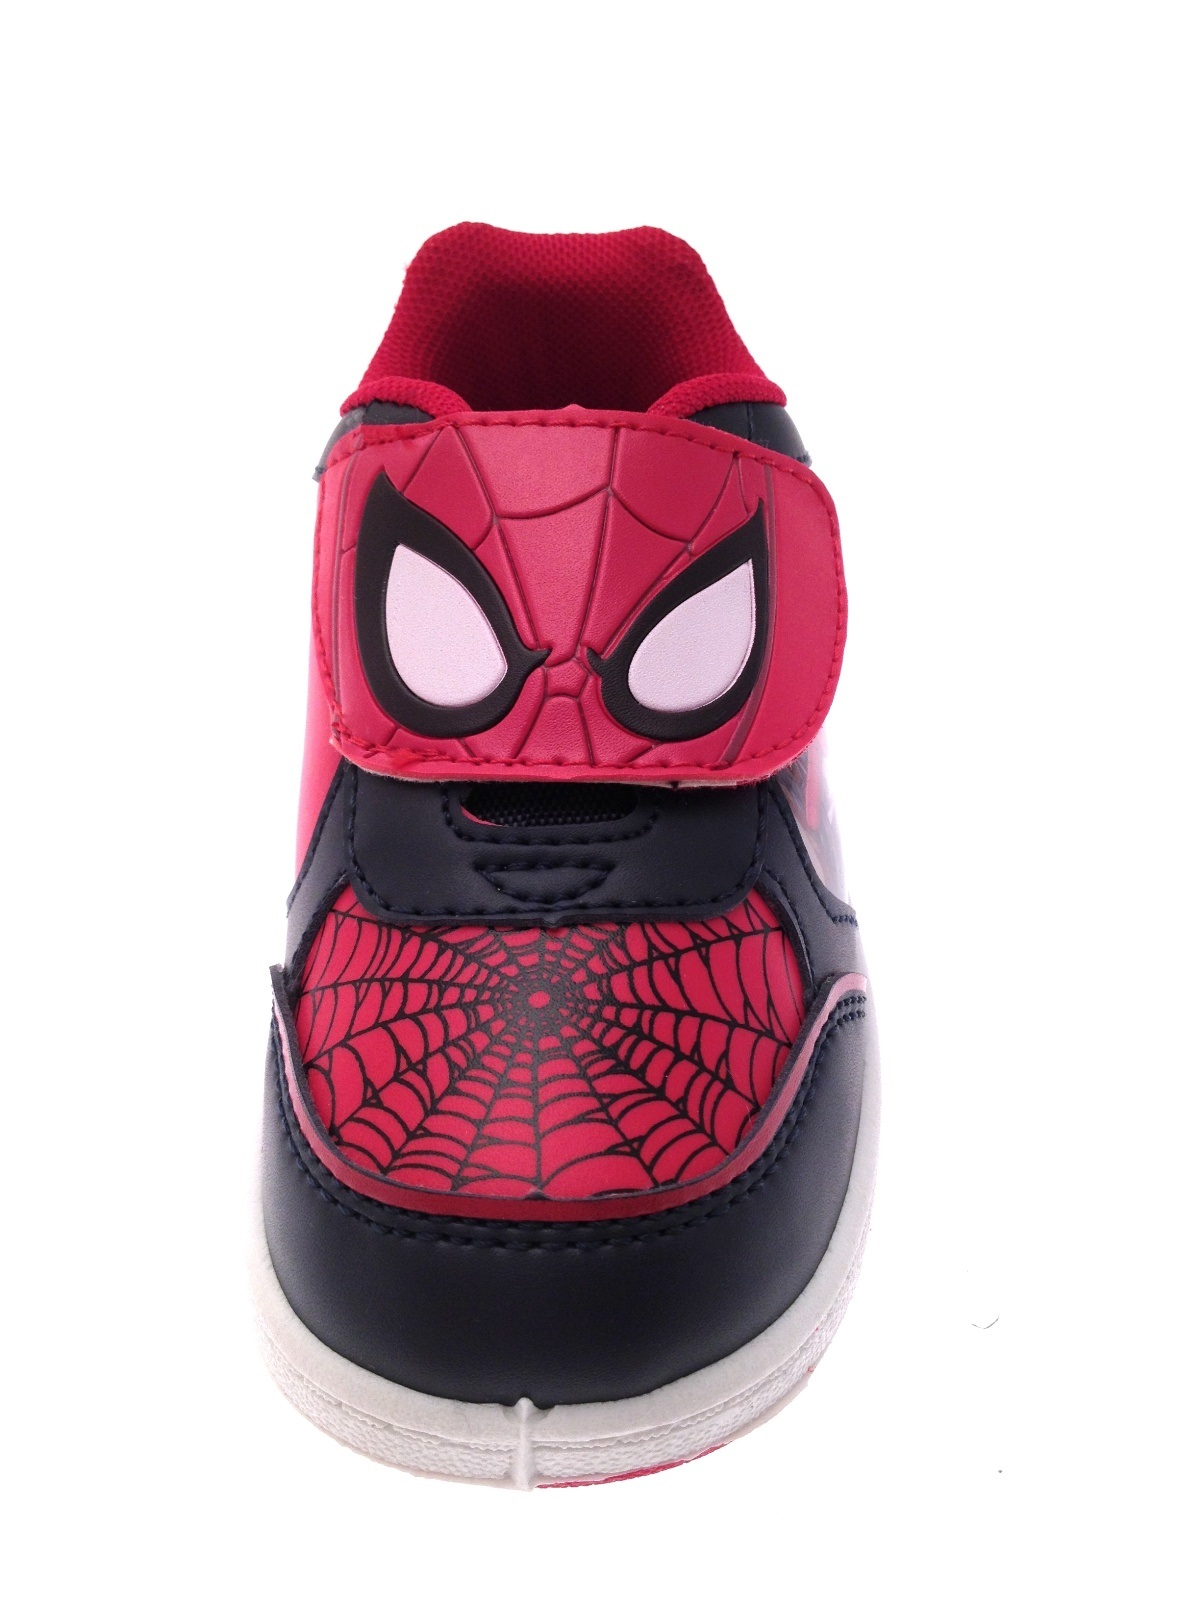 Marvel Spiderman Sports Skate Trainers Hi Tops Ankle Boots Boys Shoes Size UK